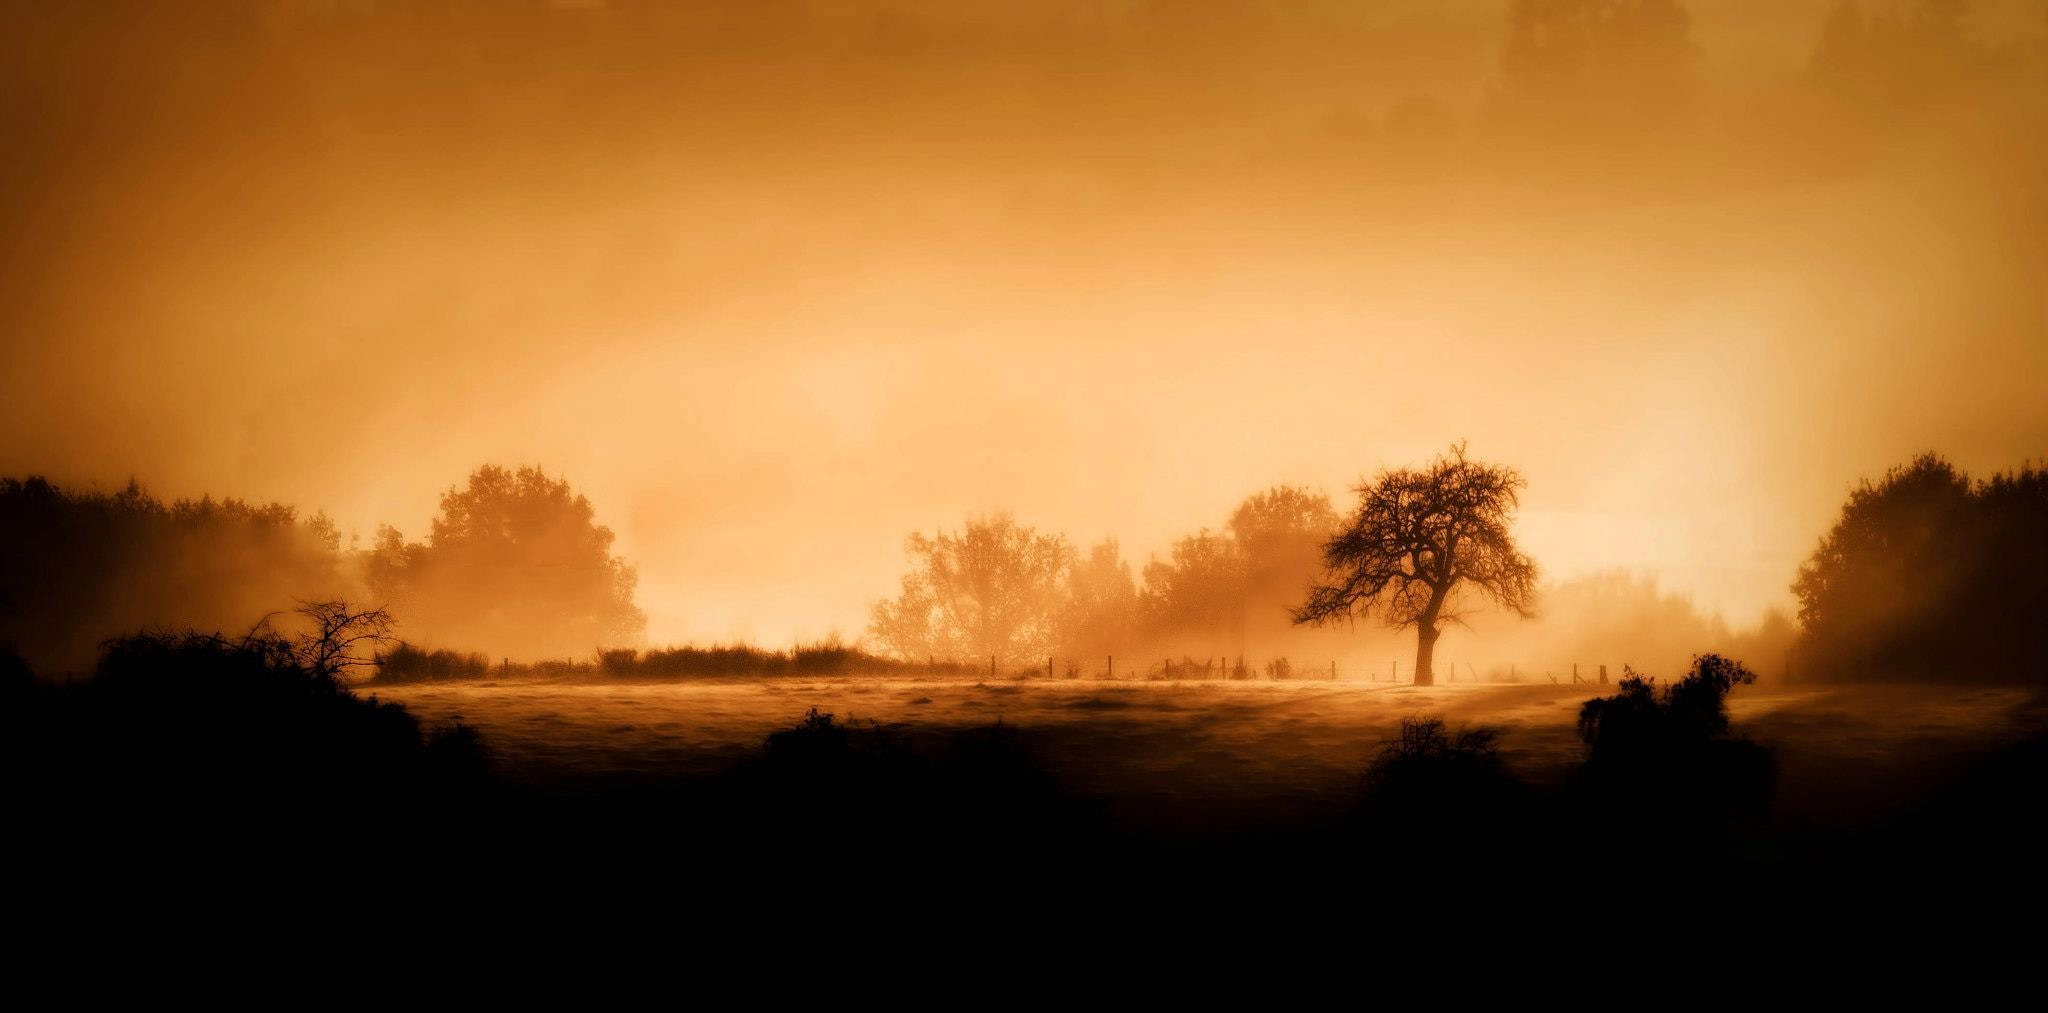 Photograph Fog and tree by Michael Sanchez on 500px